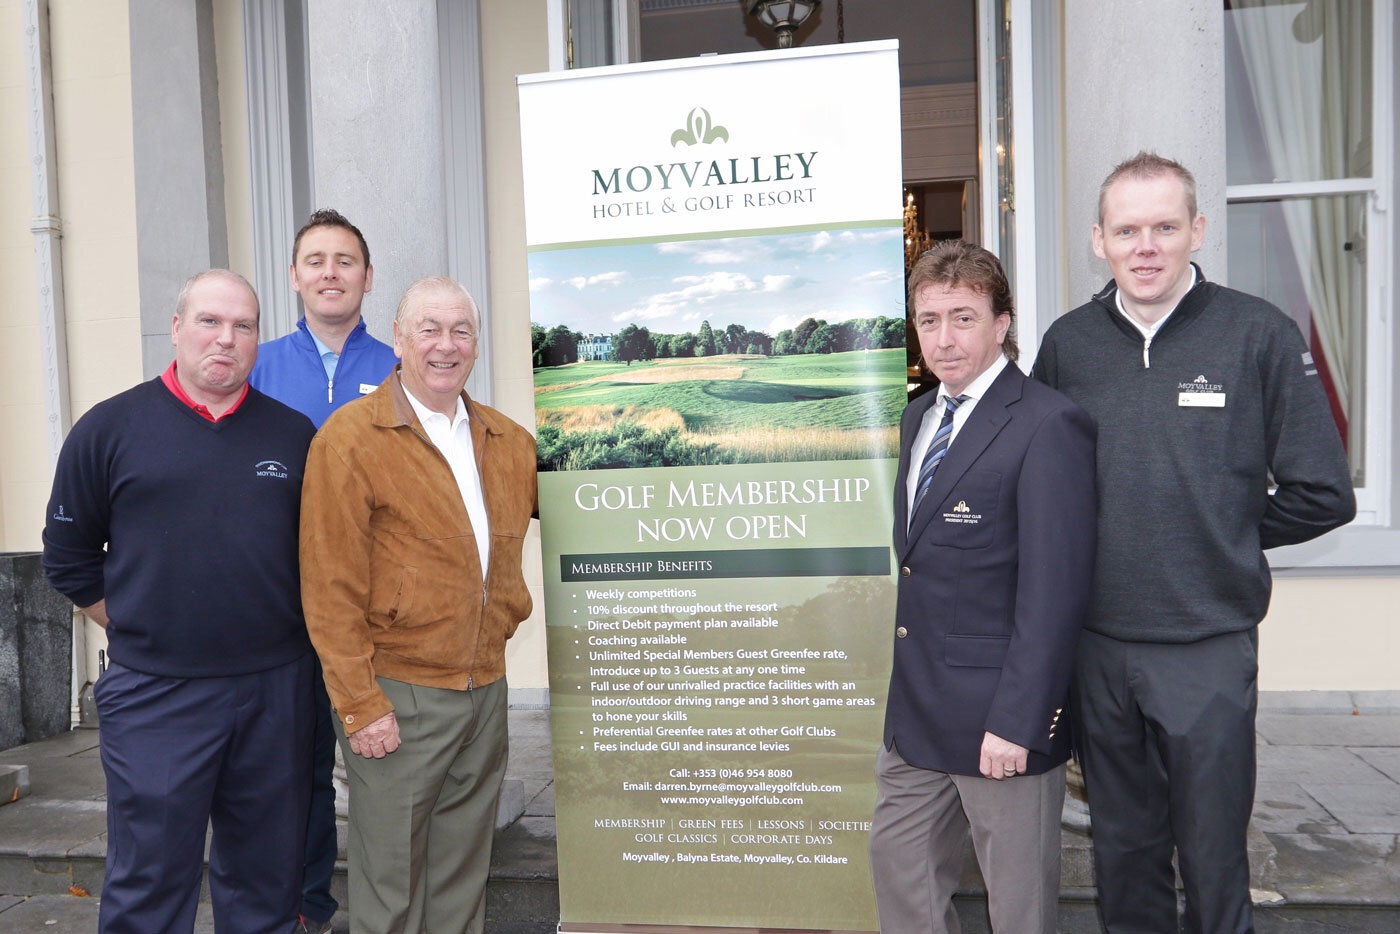 (L-R) Alan Walsh (Course Superintendent), Brendan Mackay (Assistant PGA Professional), Christy O'Connor Jnr, Michael Doherty - (President) and Darren Byrne (PGA Professional) at Moyvalley Hotel & Golf Resort, Co. Kildare.